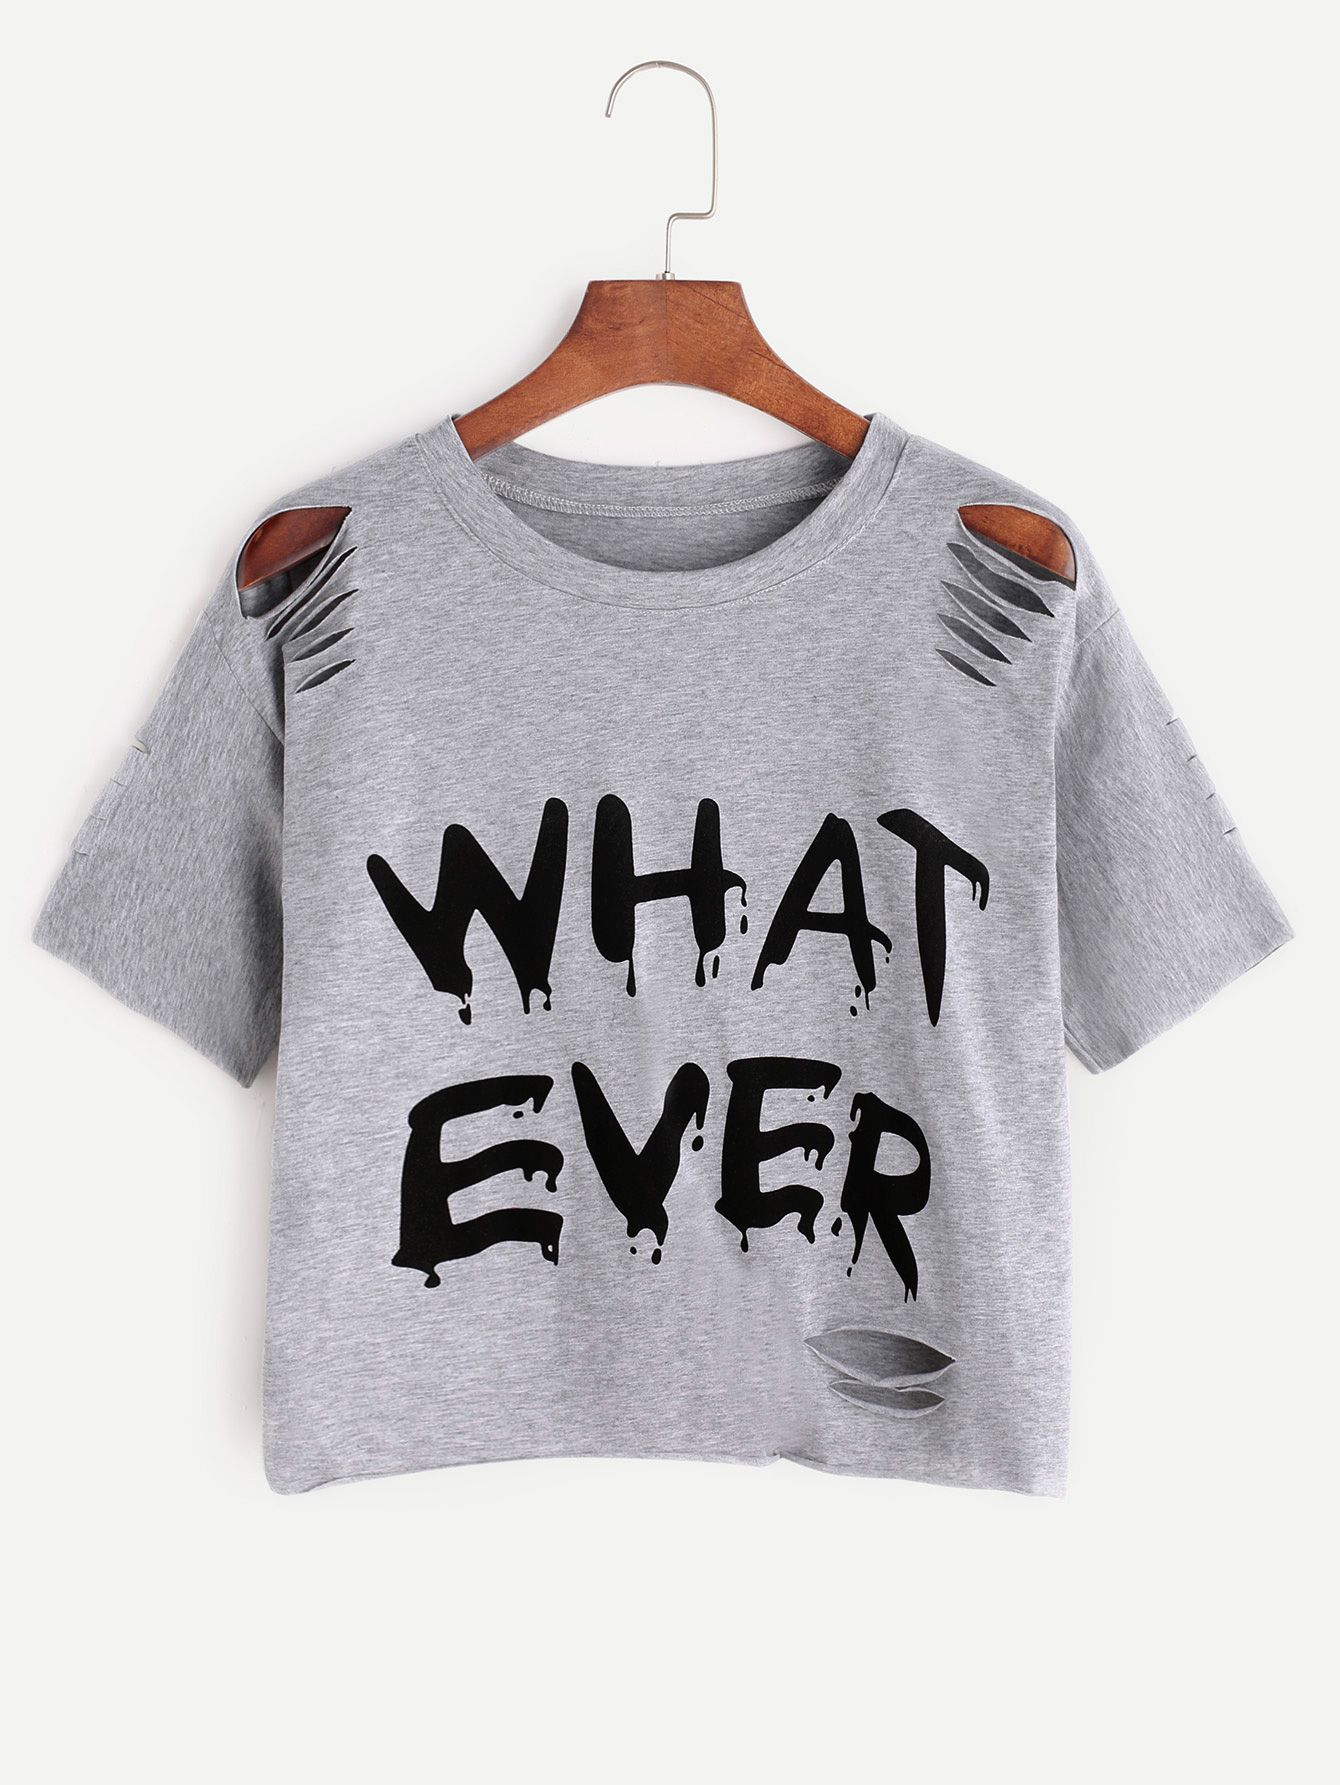 b46eb2d5dc Shop Grey Letter Print Ripped T-shirt online. SheIn offers Grey Letter  Print Ripped